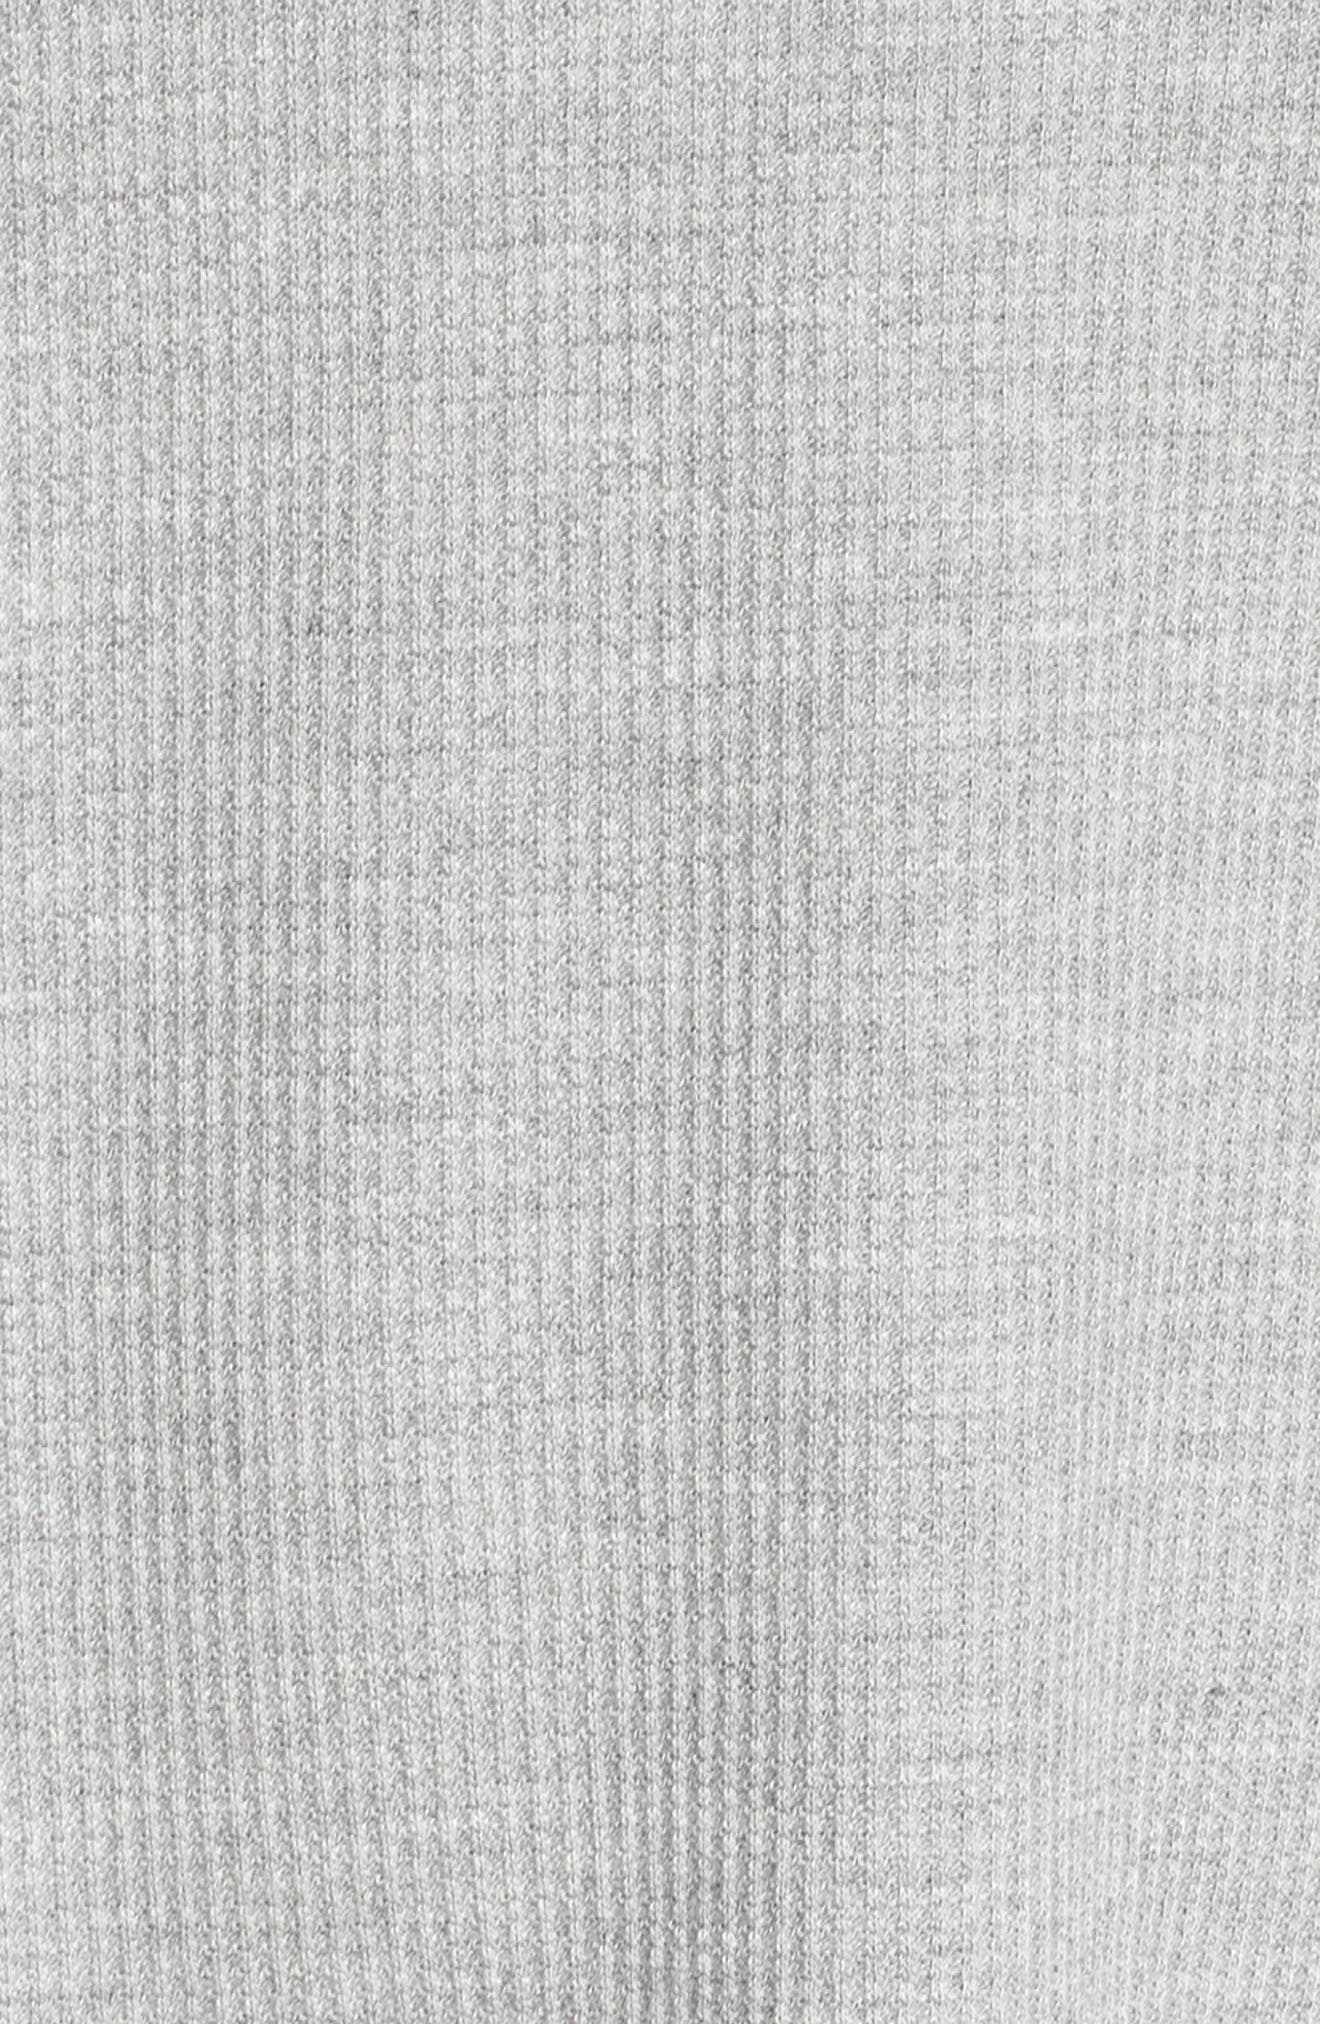 NFL Thermal Tee,                             Alternate thumbnail 5, color,                             020